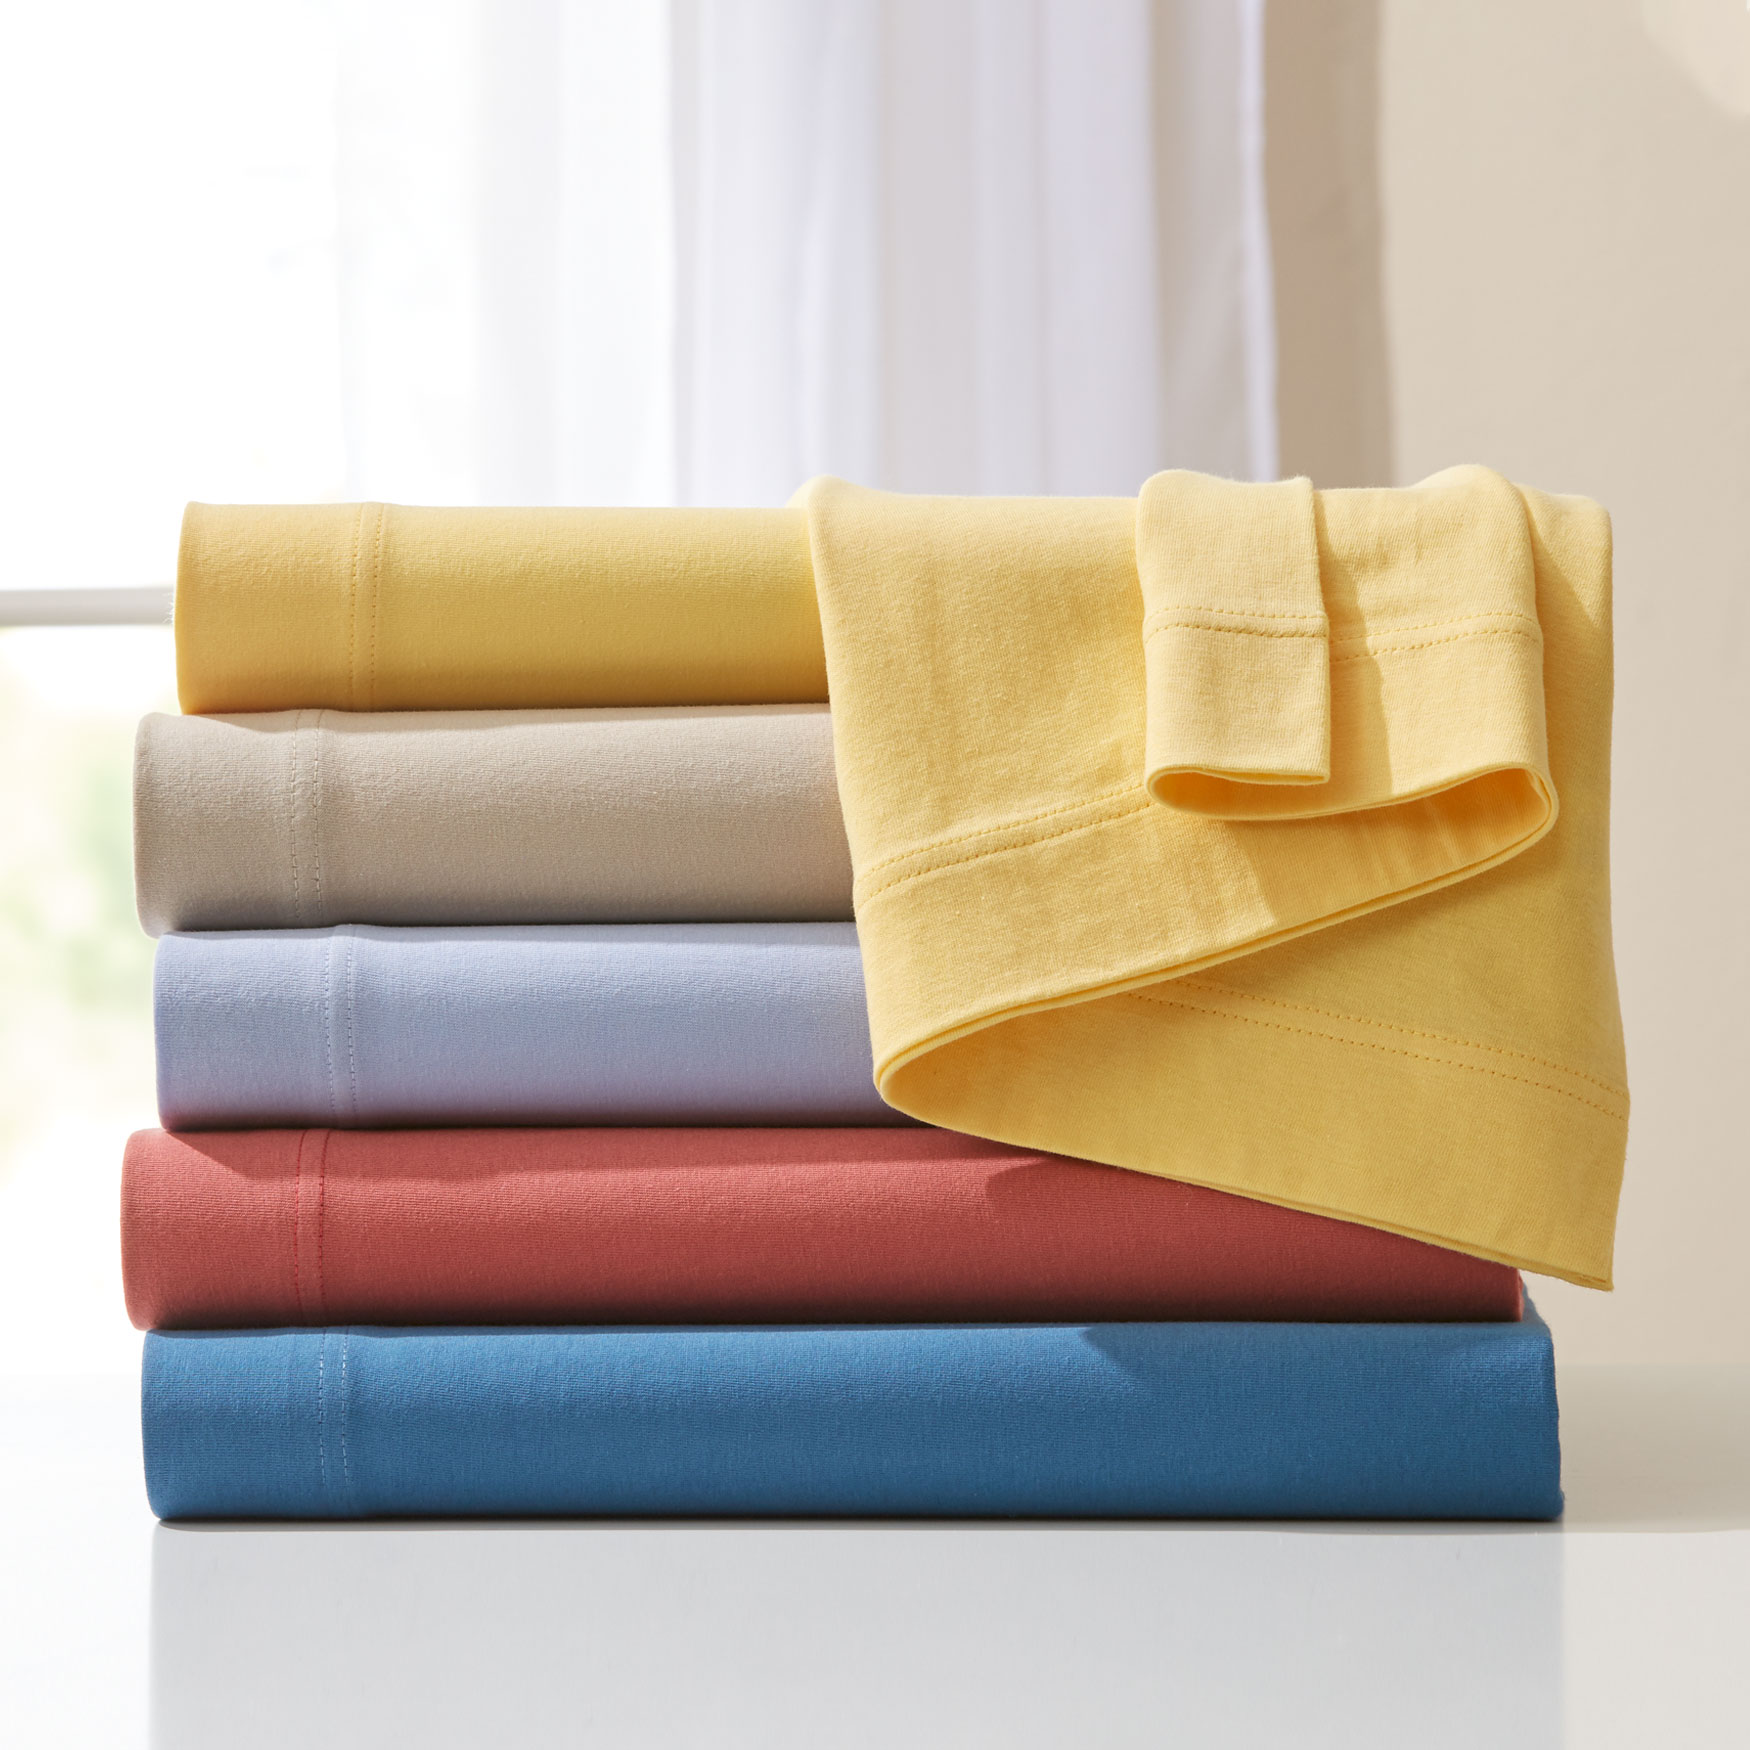 BH Studio Jersey Knit Sheet Set,